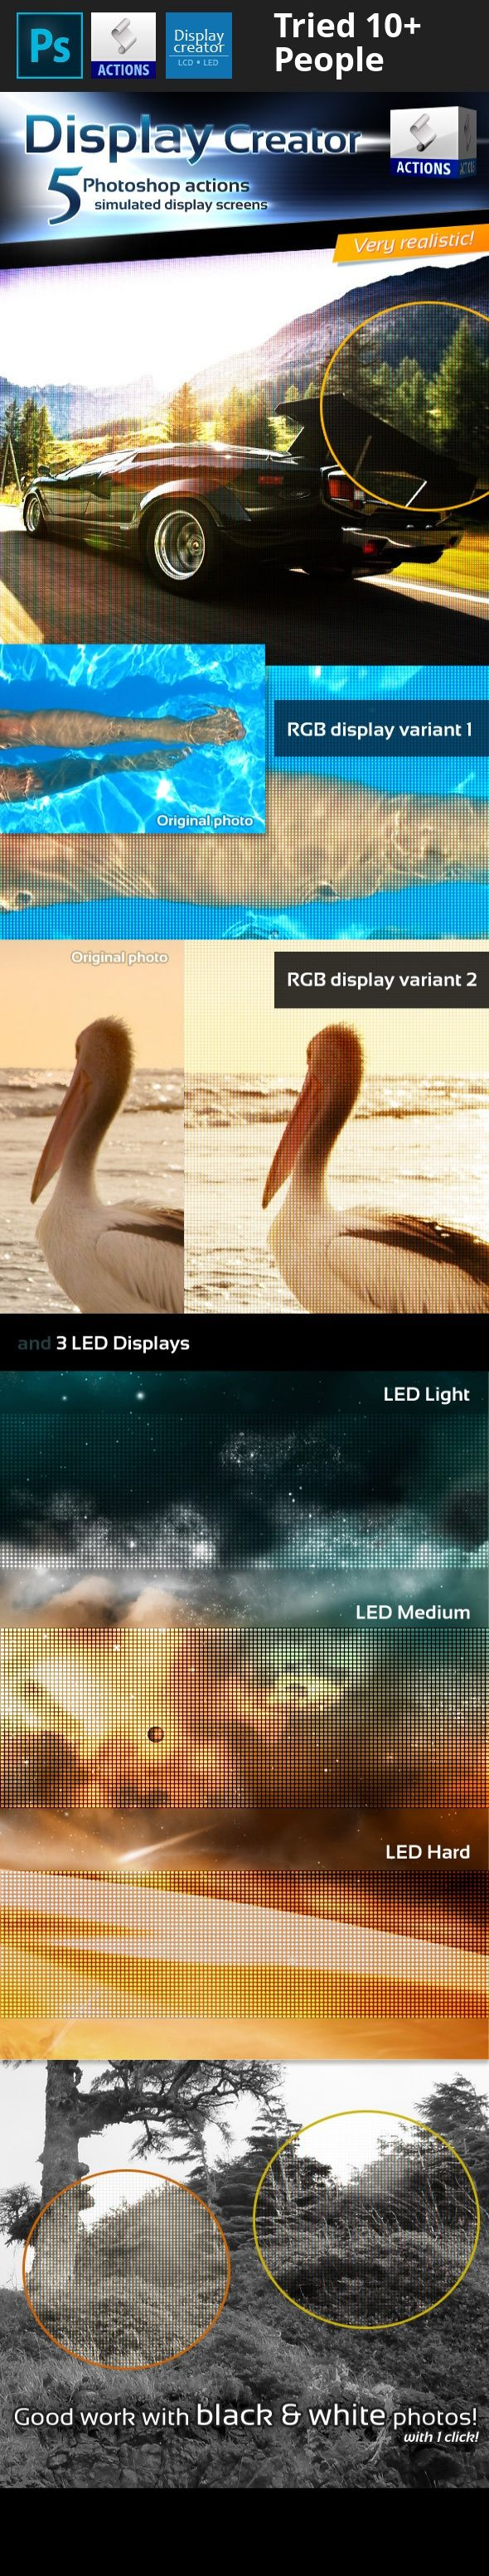 action, any size, background, cool, create, display, effect, fast, lcd, led, modern, photo, photoshop, quick, screen 5 photoshop actions for simulated  LCD  and  LED  displays. Create realistic effects without smart objects. Open the photo and make one-click. Good work with black and white photos too.   If you like it, please rate    Enjoy!